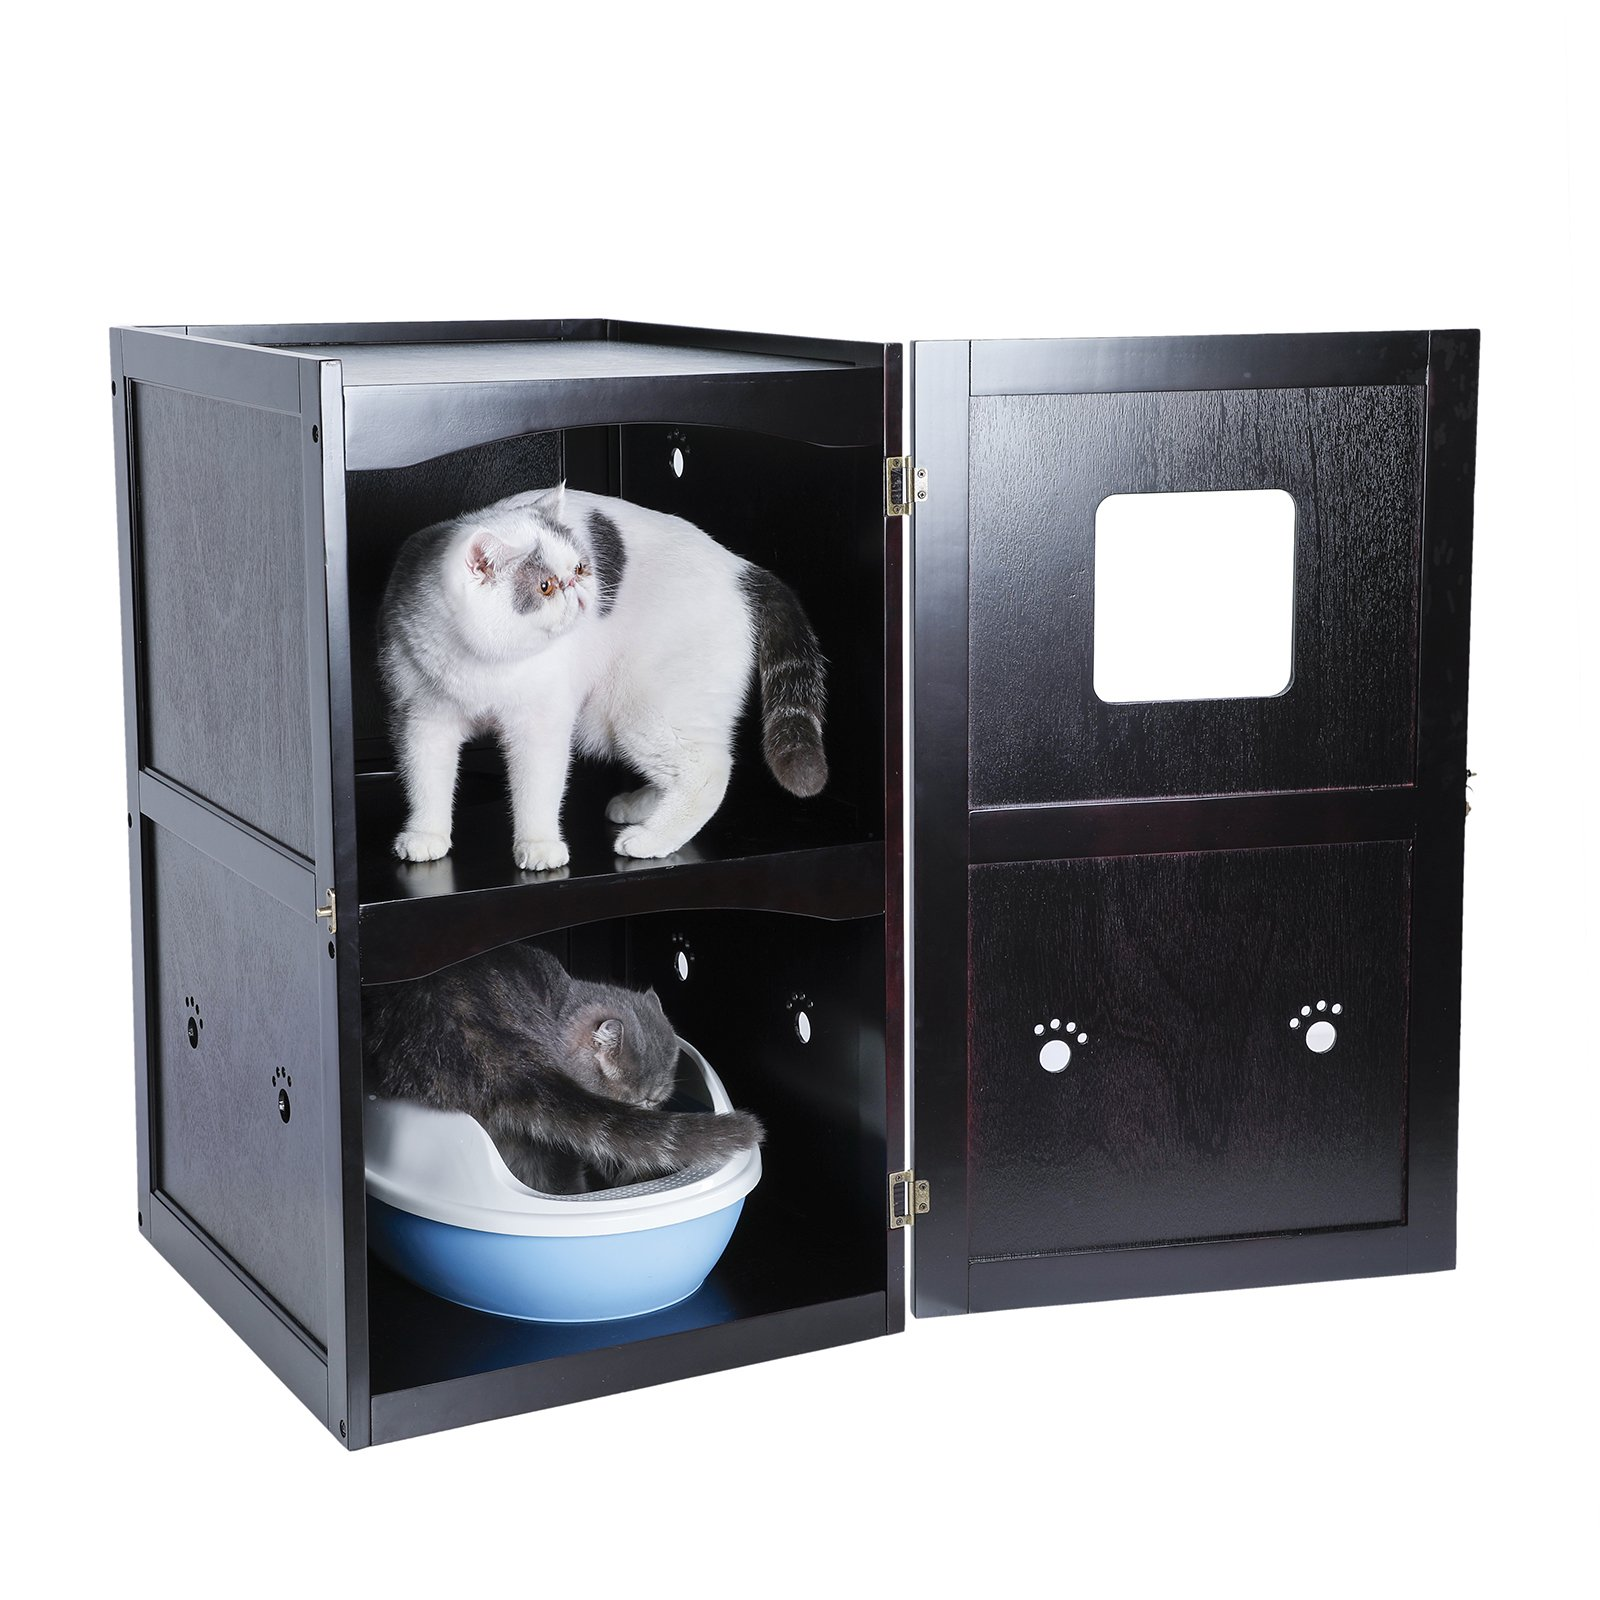 Petsfit Double-Decker Pet House Litter Box Enclosure Night Stand Painted with Non-Toxic with Latch Holding The Door by Petsfit